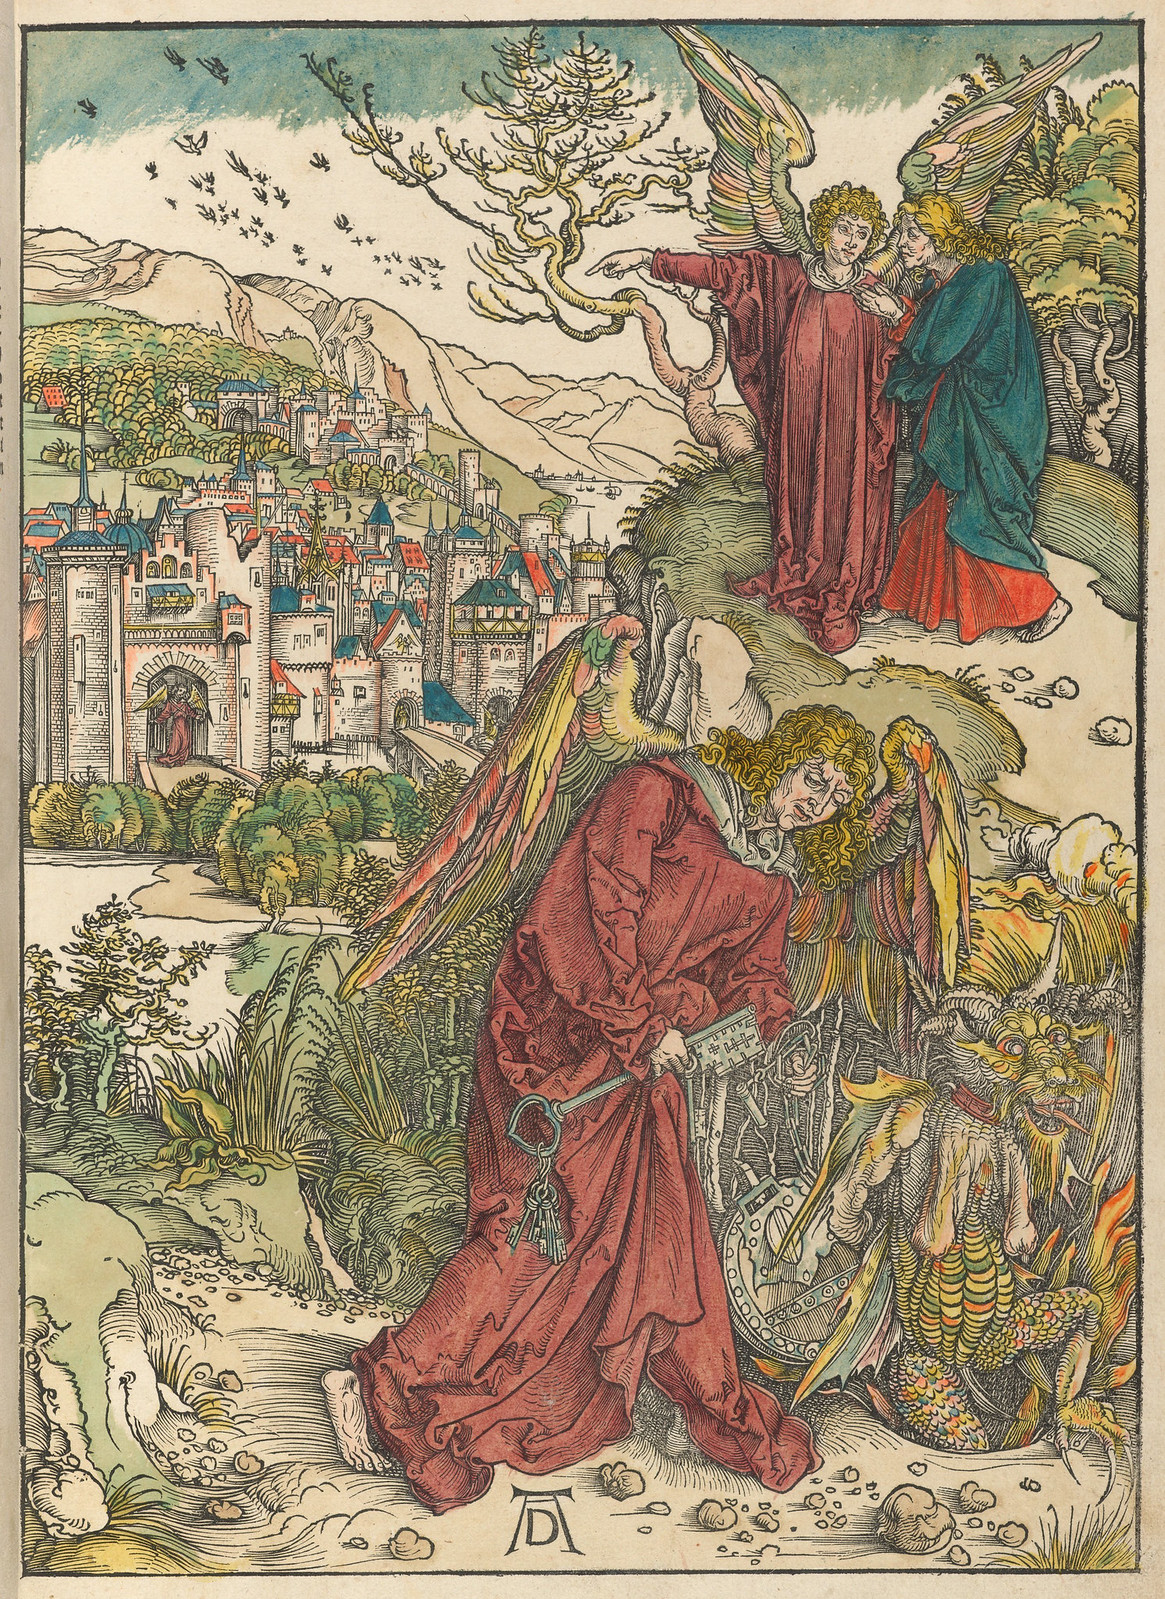 Albrecht Dürer - Angel with the key of the bottomless pit,  Plate fifteen of fifteen from the Latin edition of The Apocalypse series, hand colored printed 1511